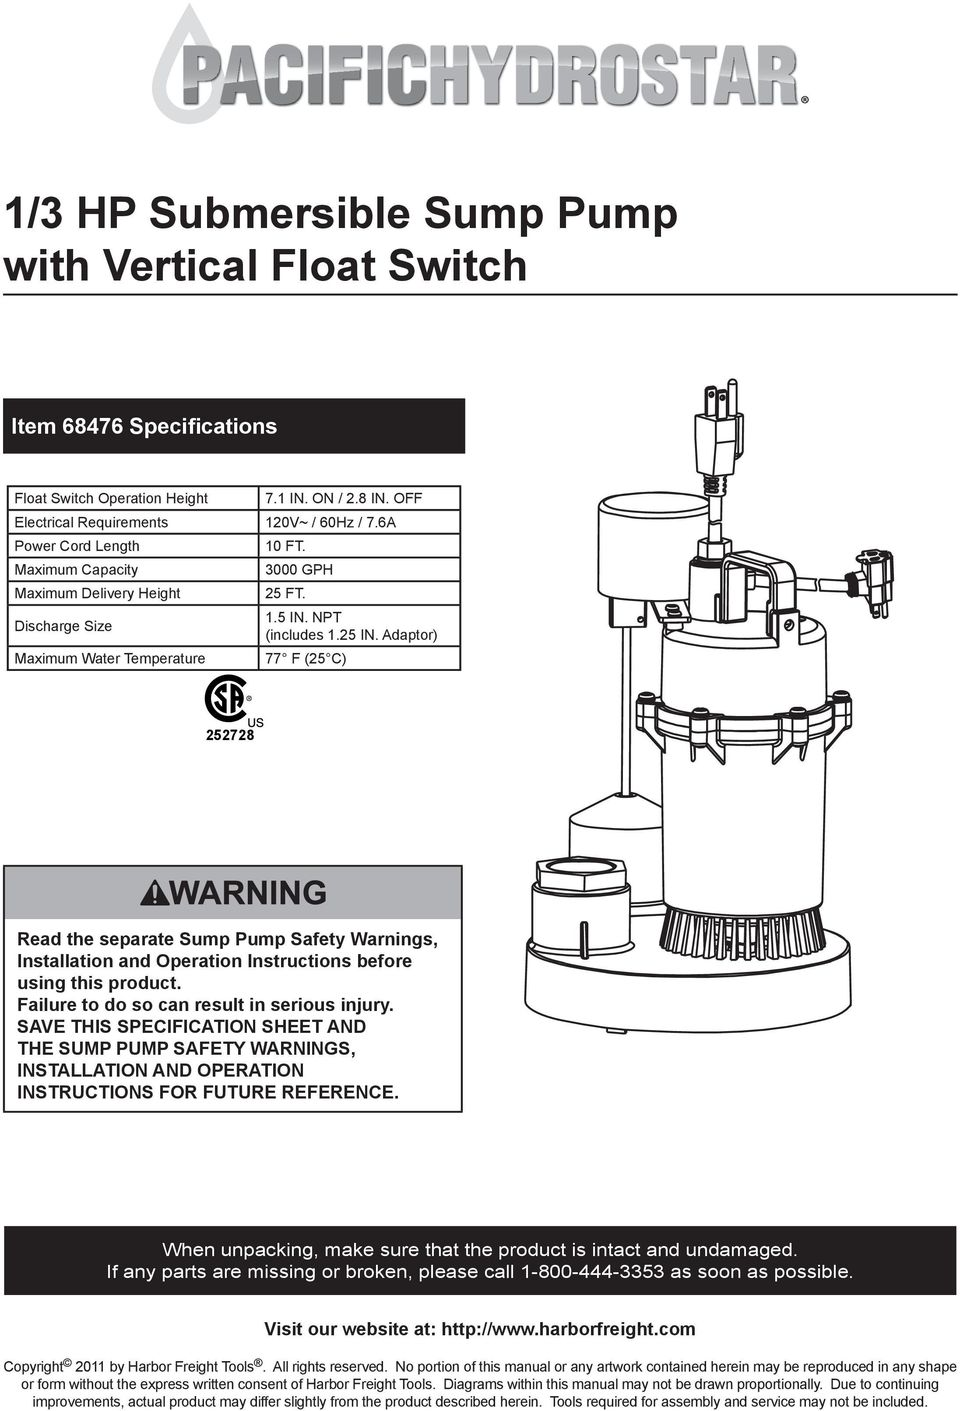 Adaptor) 77 F (25 C) 252728 Read the separate Sump Safety Warnings, Installation and Operation Instructions before using this product. Failure to do so can result in serious injury.